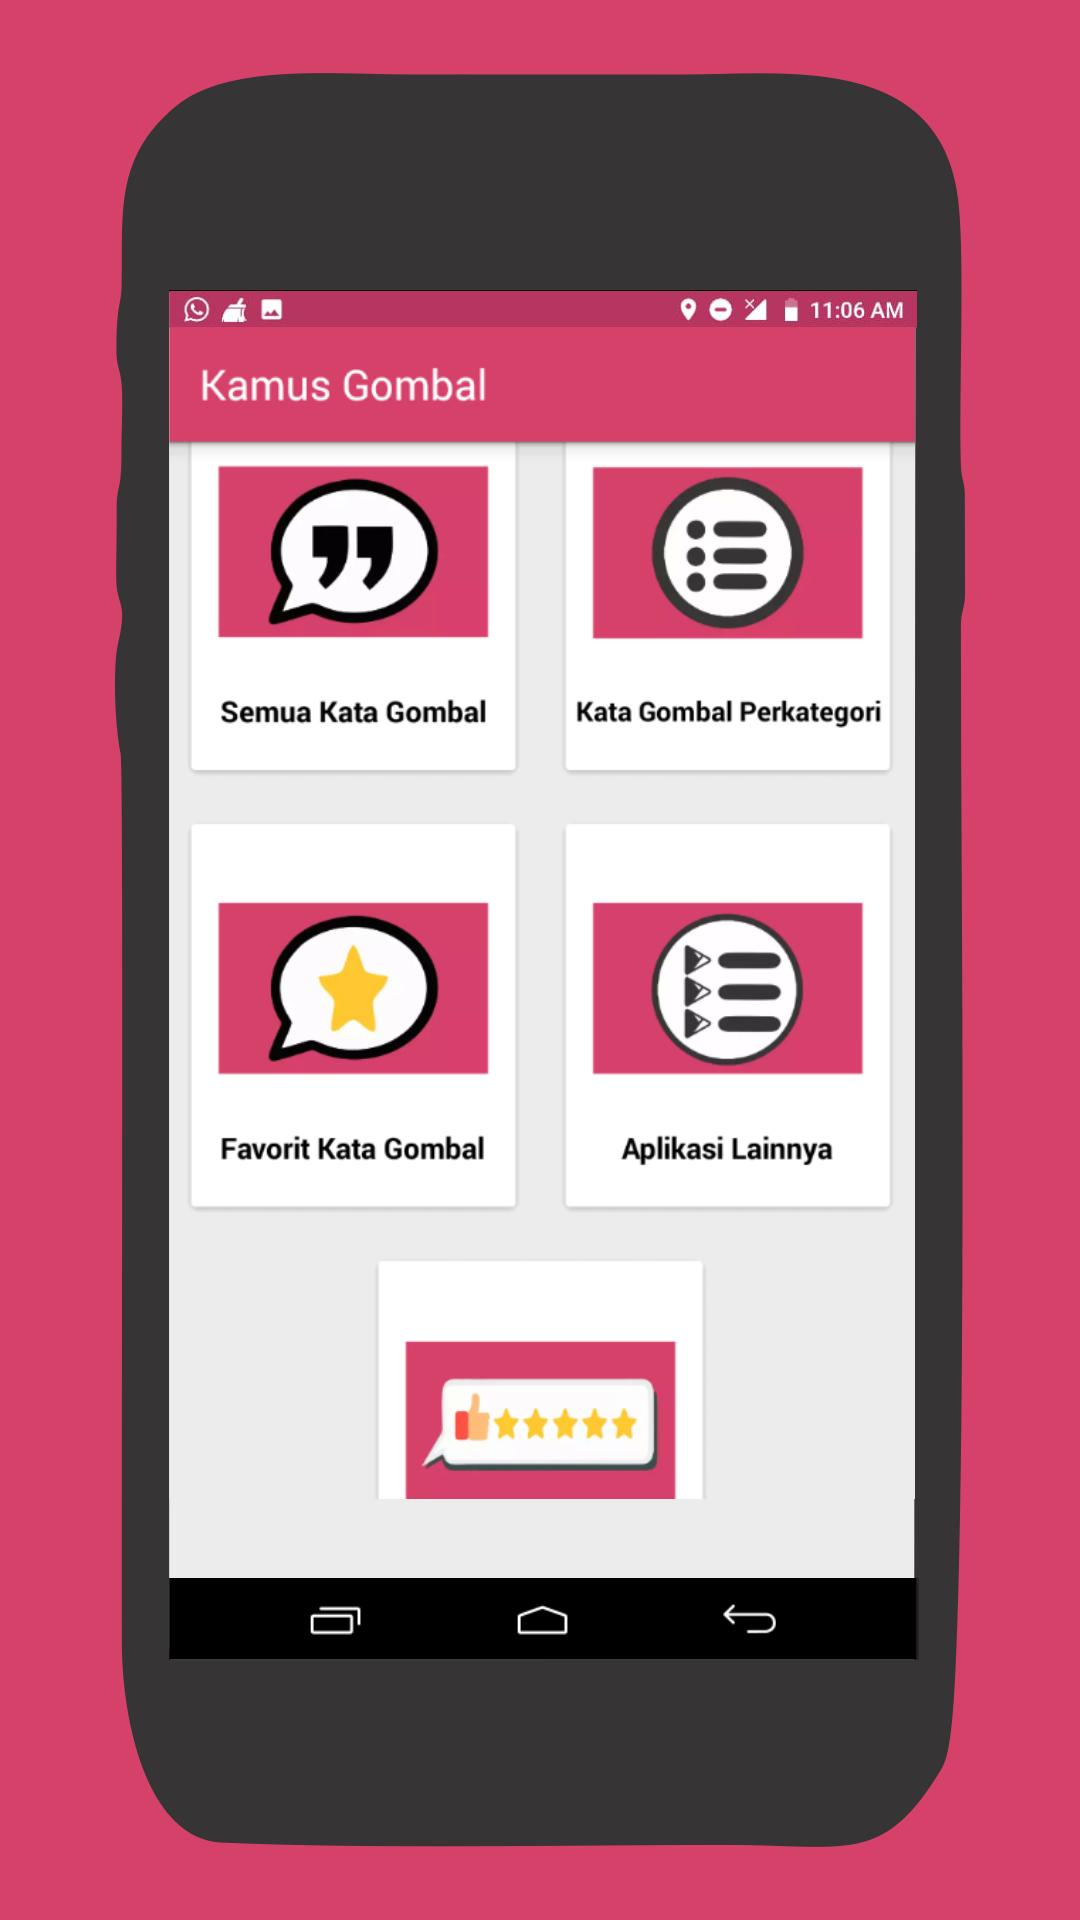 Kamus Gombal For Android APK Download